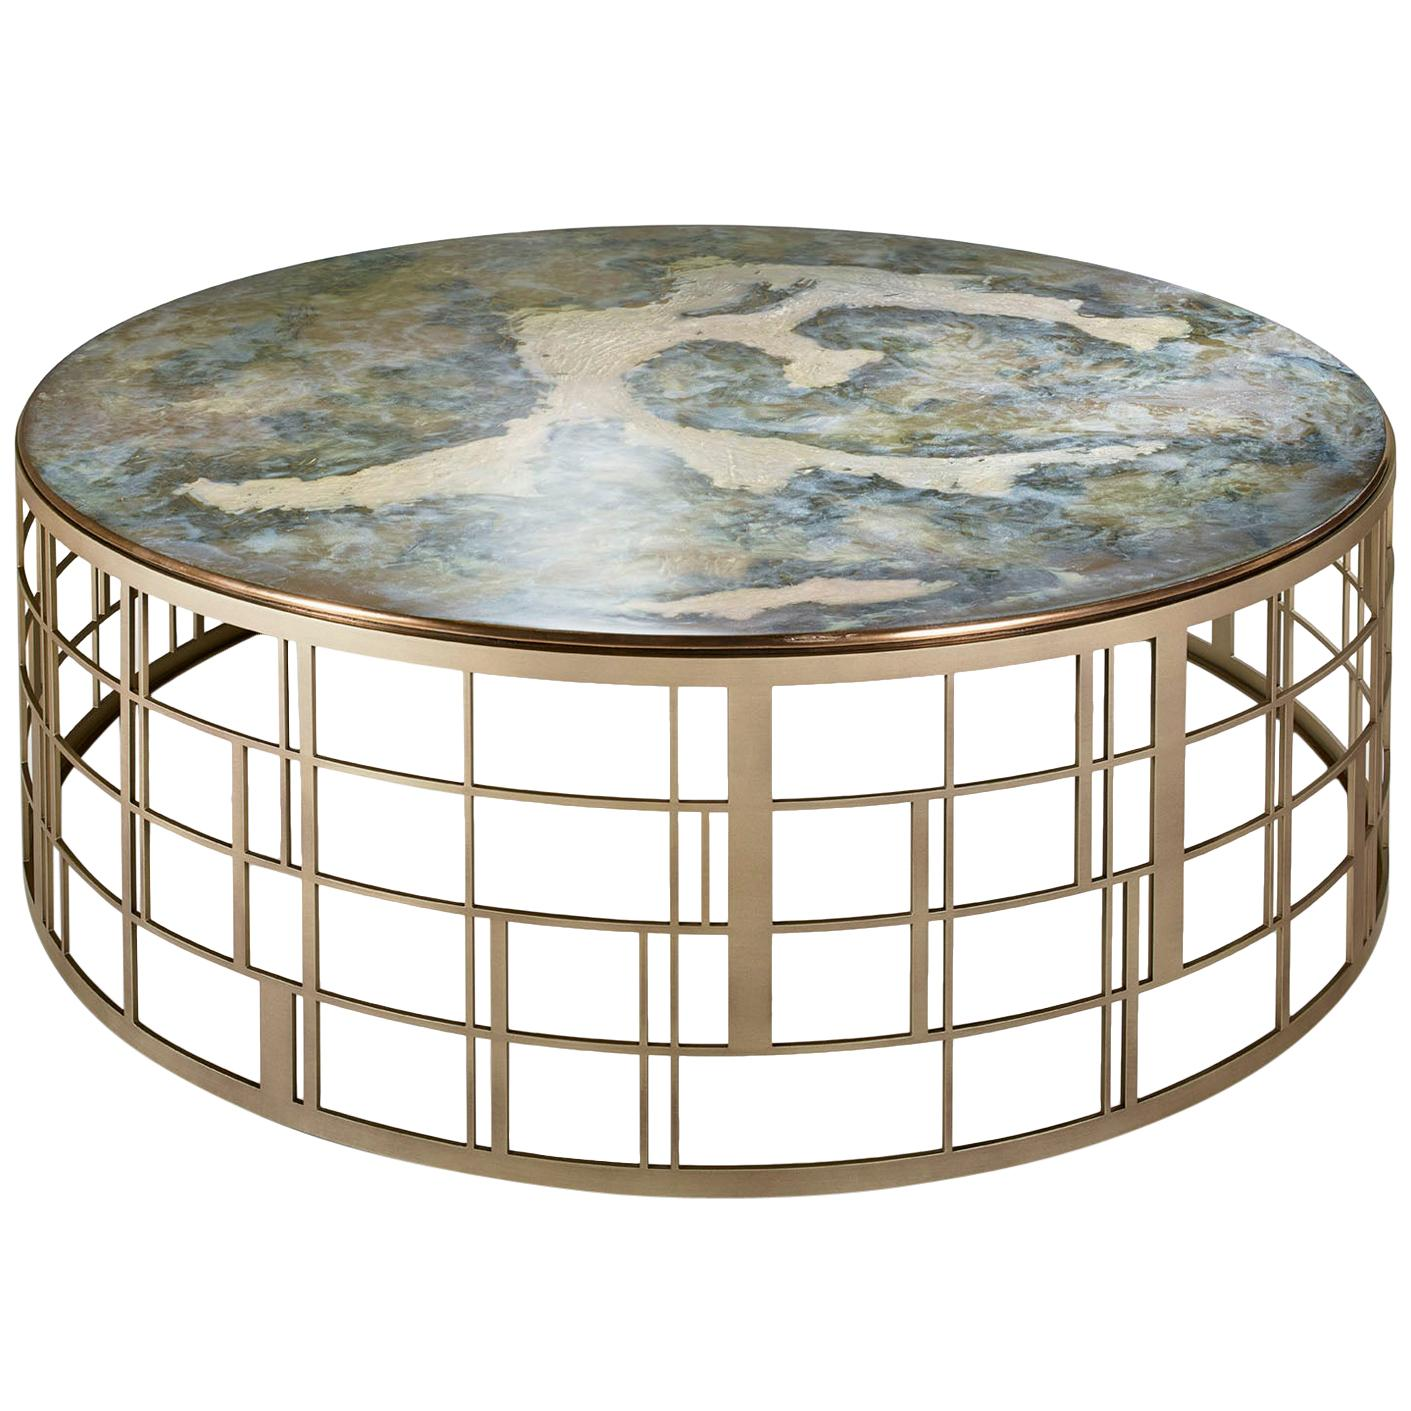 Said Table Stainless Steel Liquid Metal Champagne or Bronze Finish Top Vetrite